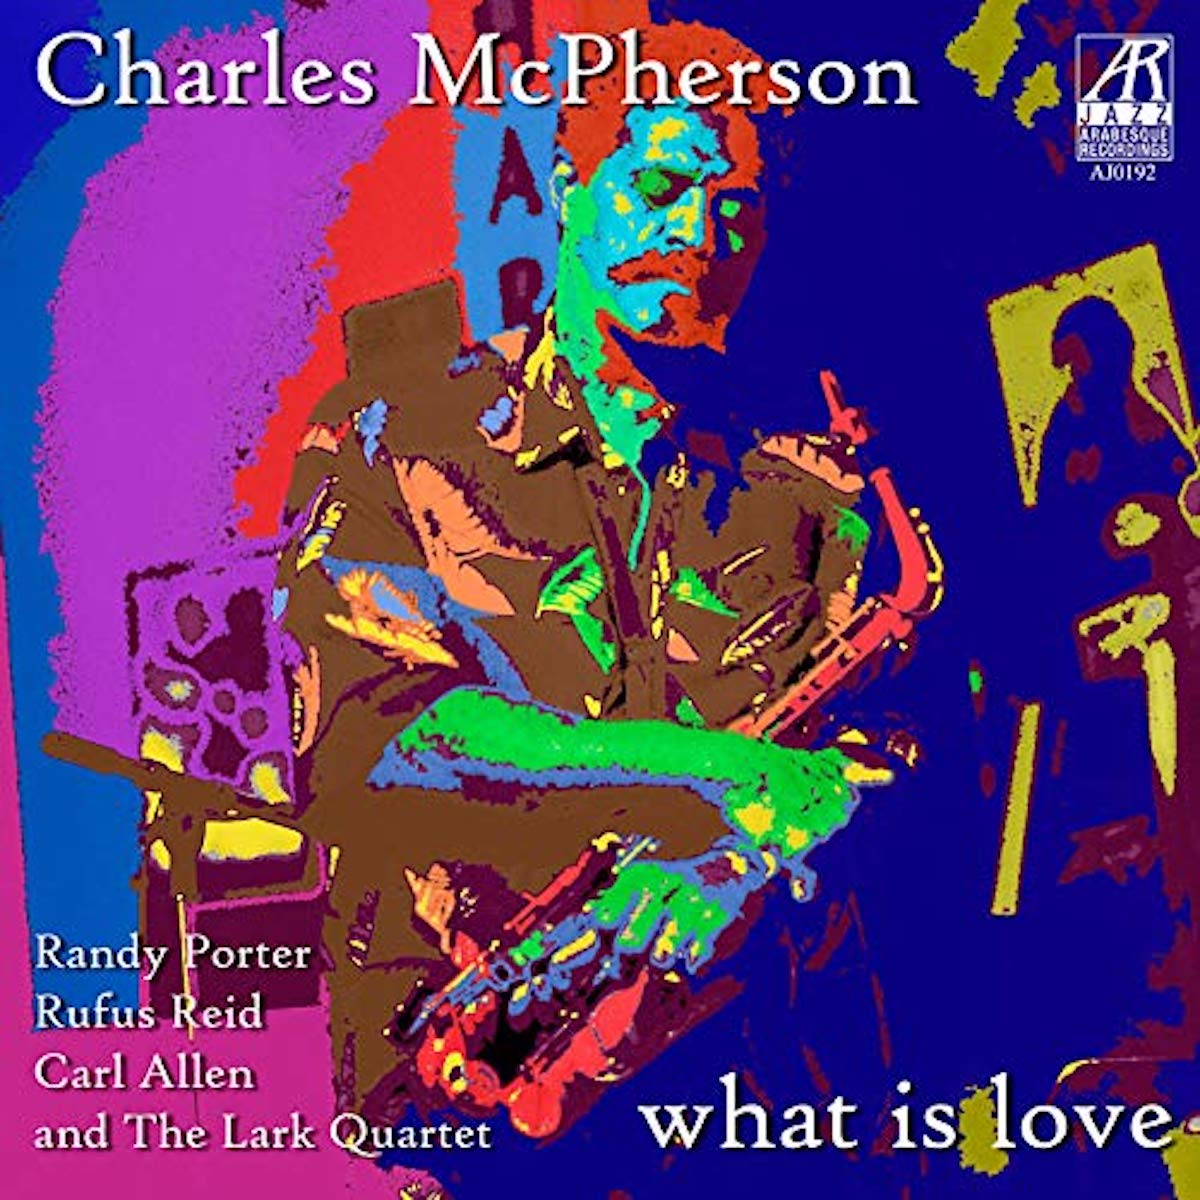 AJ0192  | What Is Love |  Charles McPherson